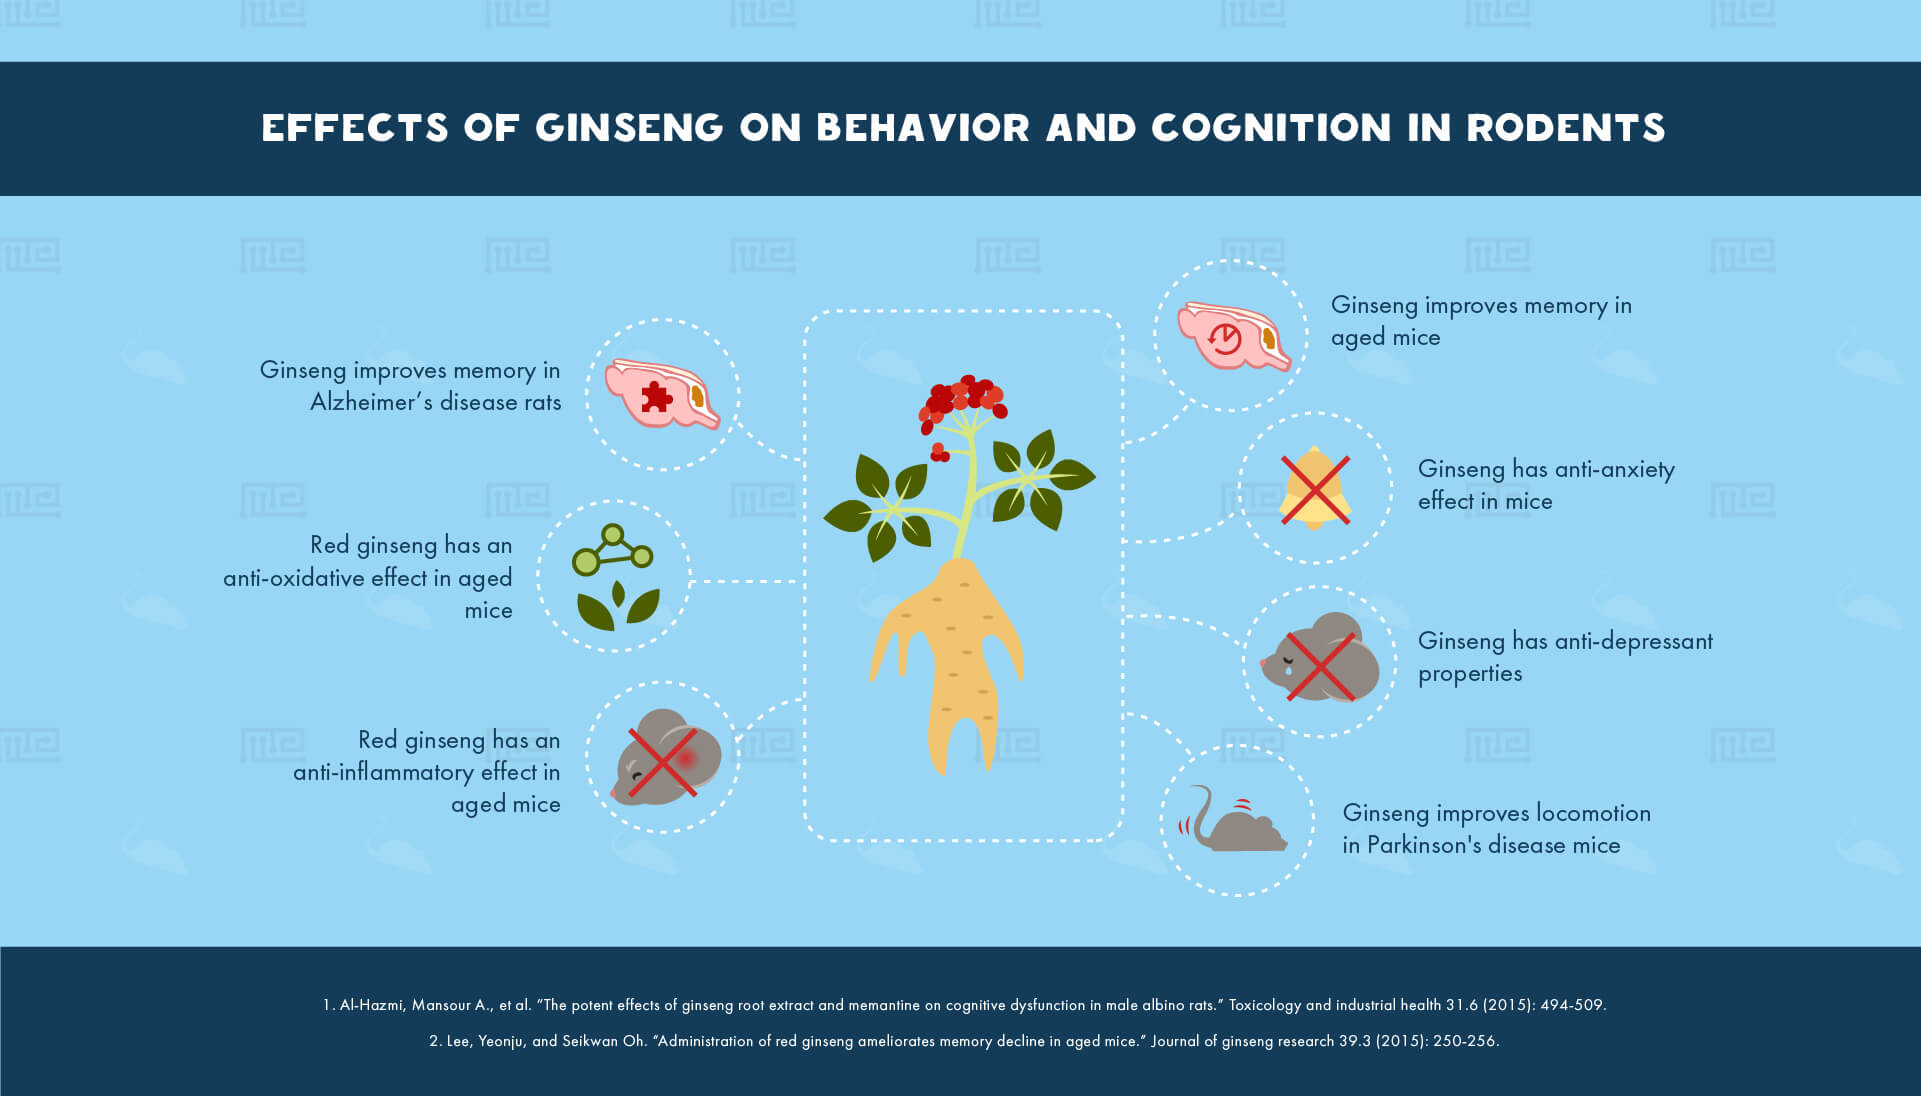 Effects of Ginseng on Behavior and Cognition in Rodents-38